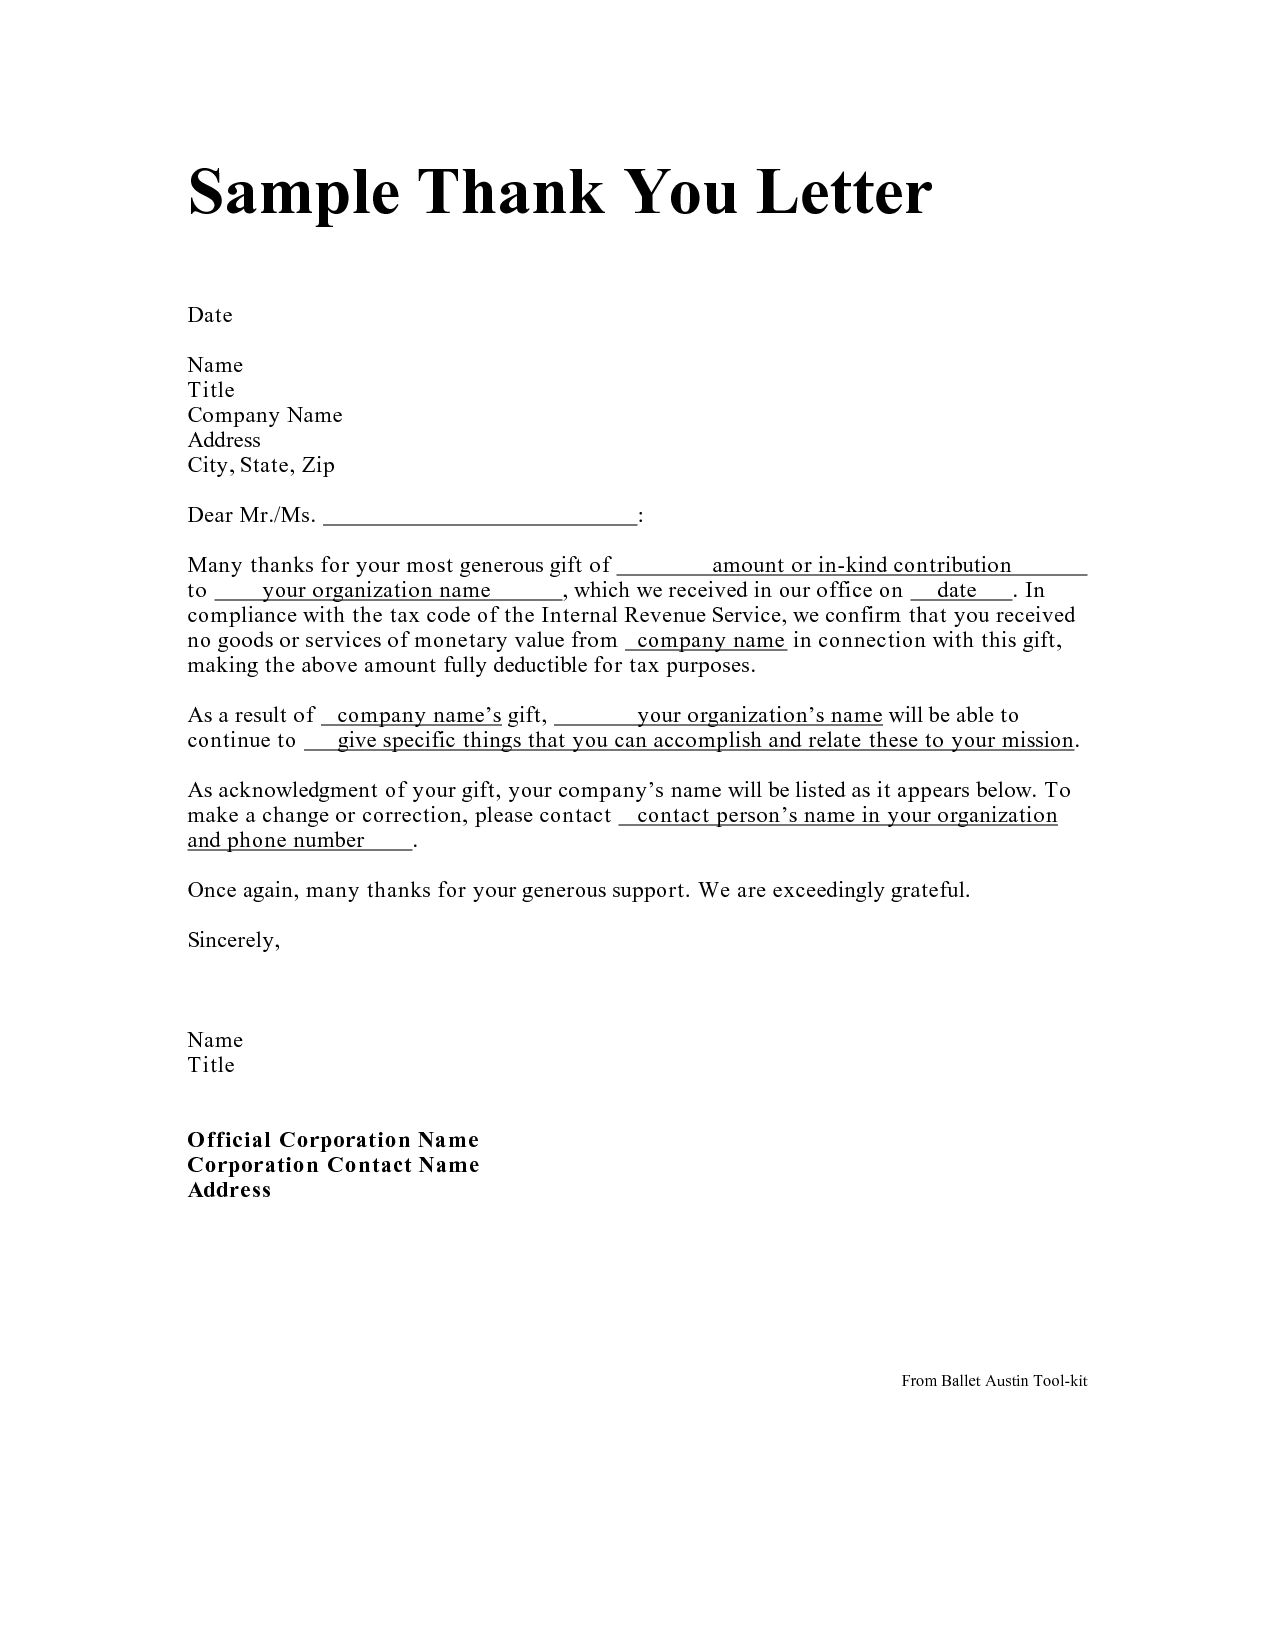 thanking letter format best template collection business thank you